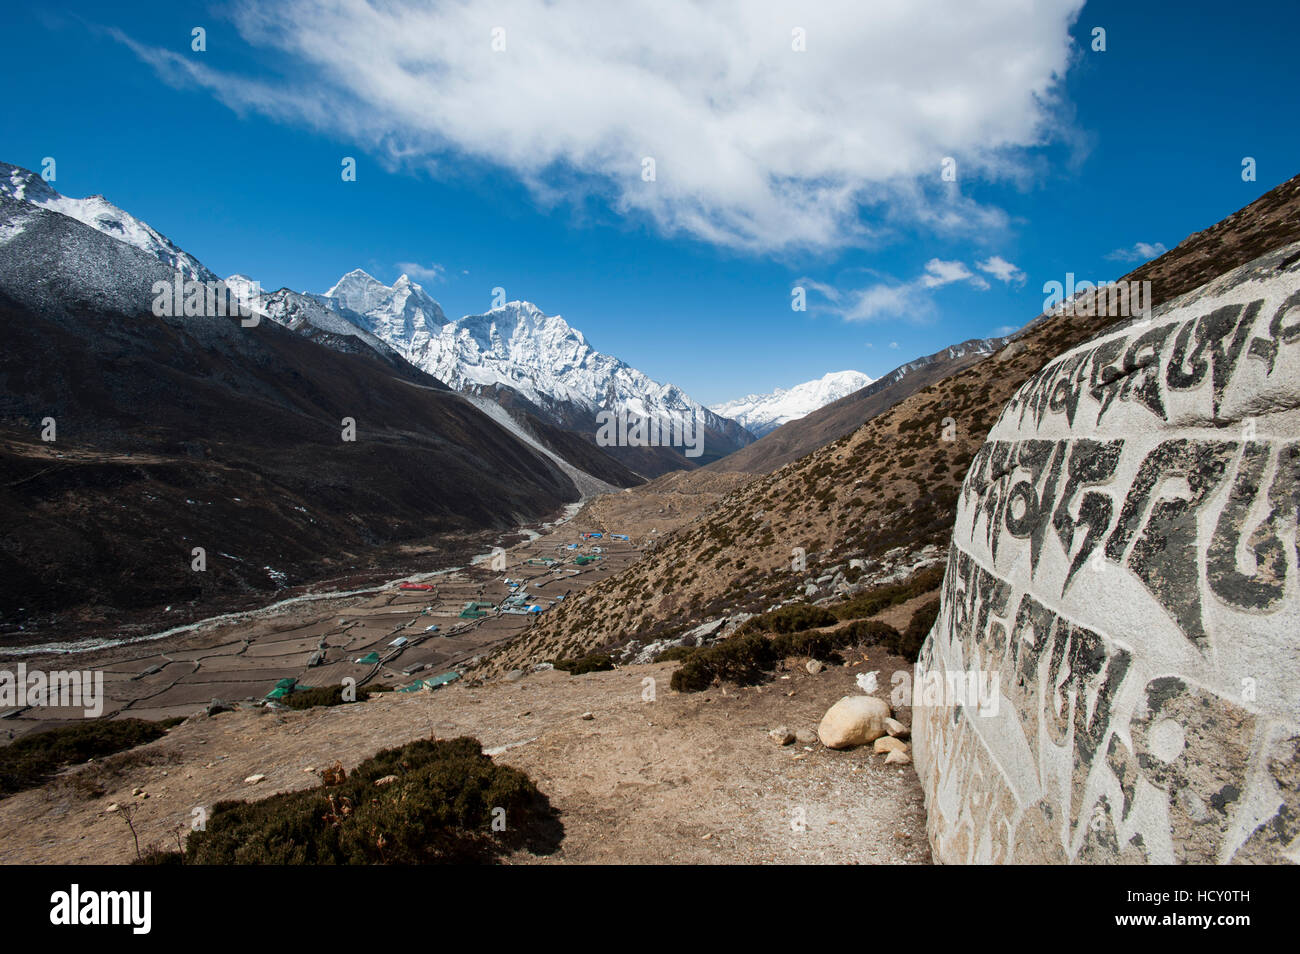 The village of Dingboche in the Khumbu (Everest) Region, Nepal - Stock Image